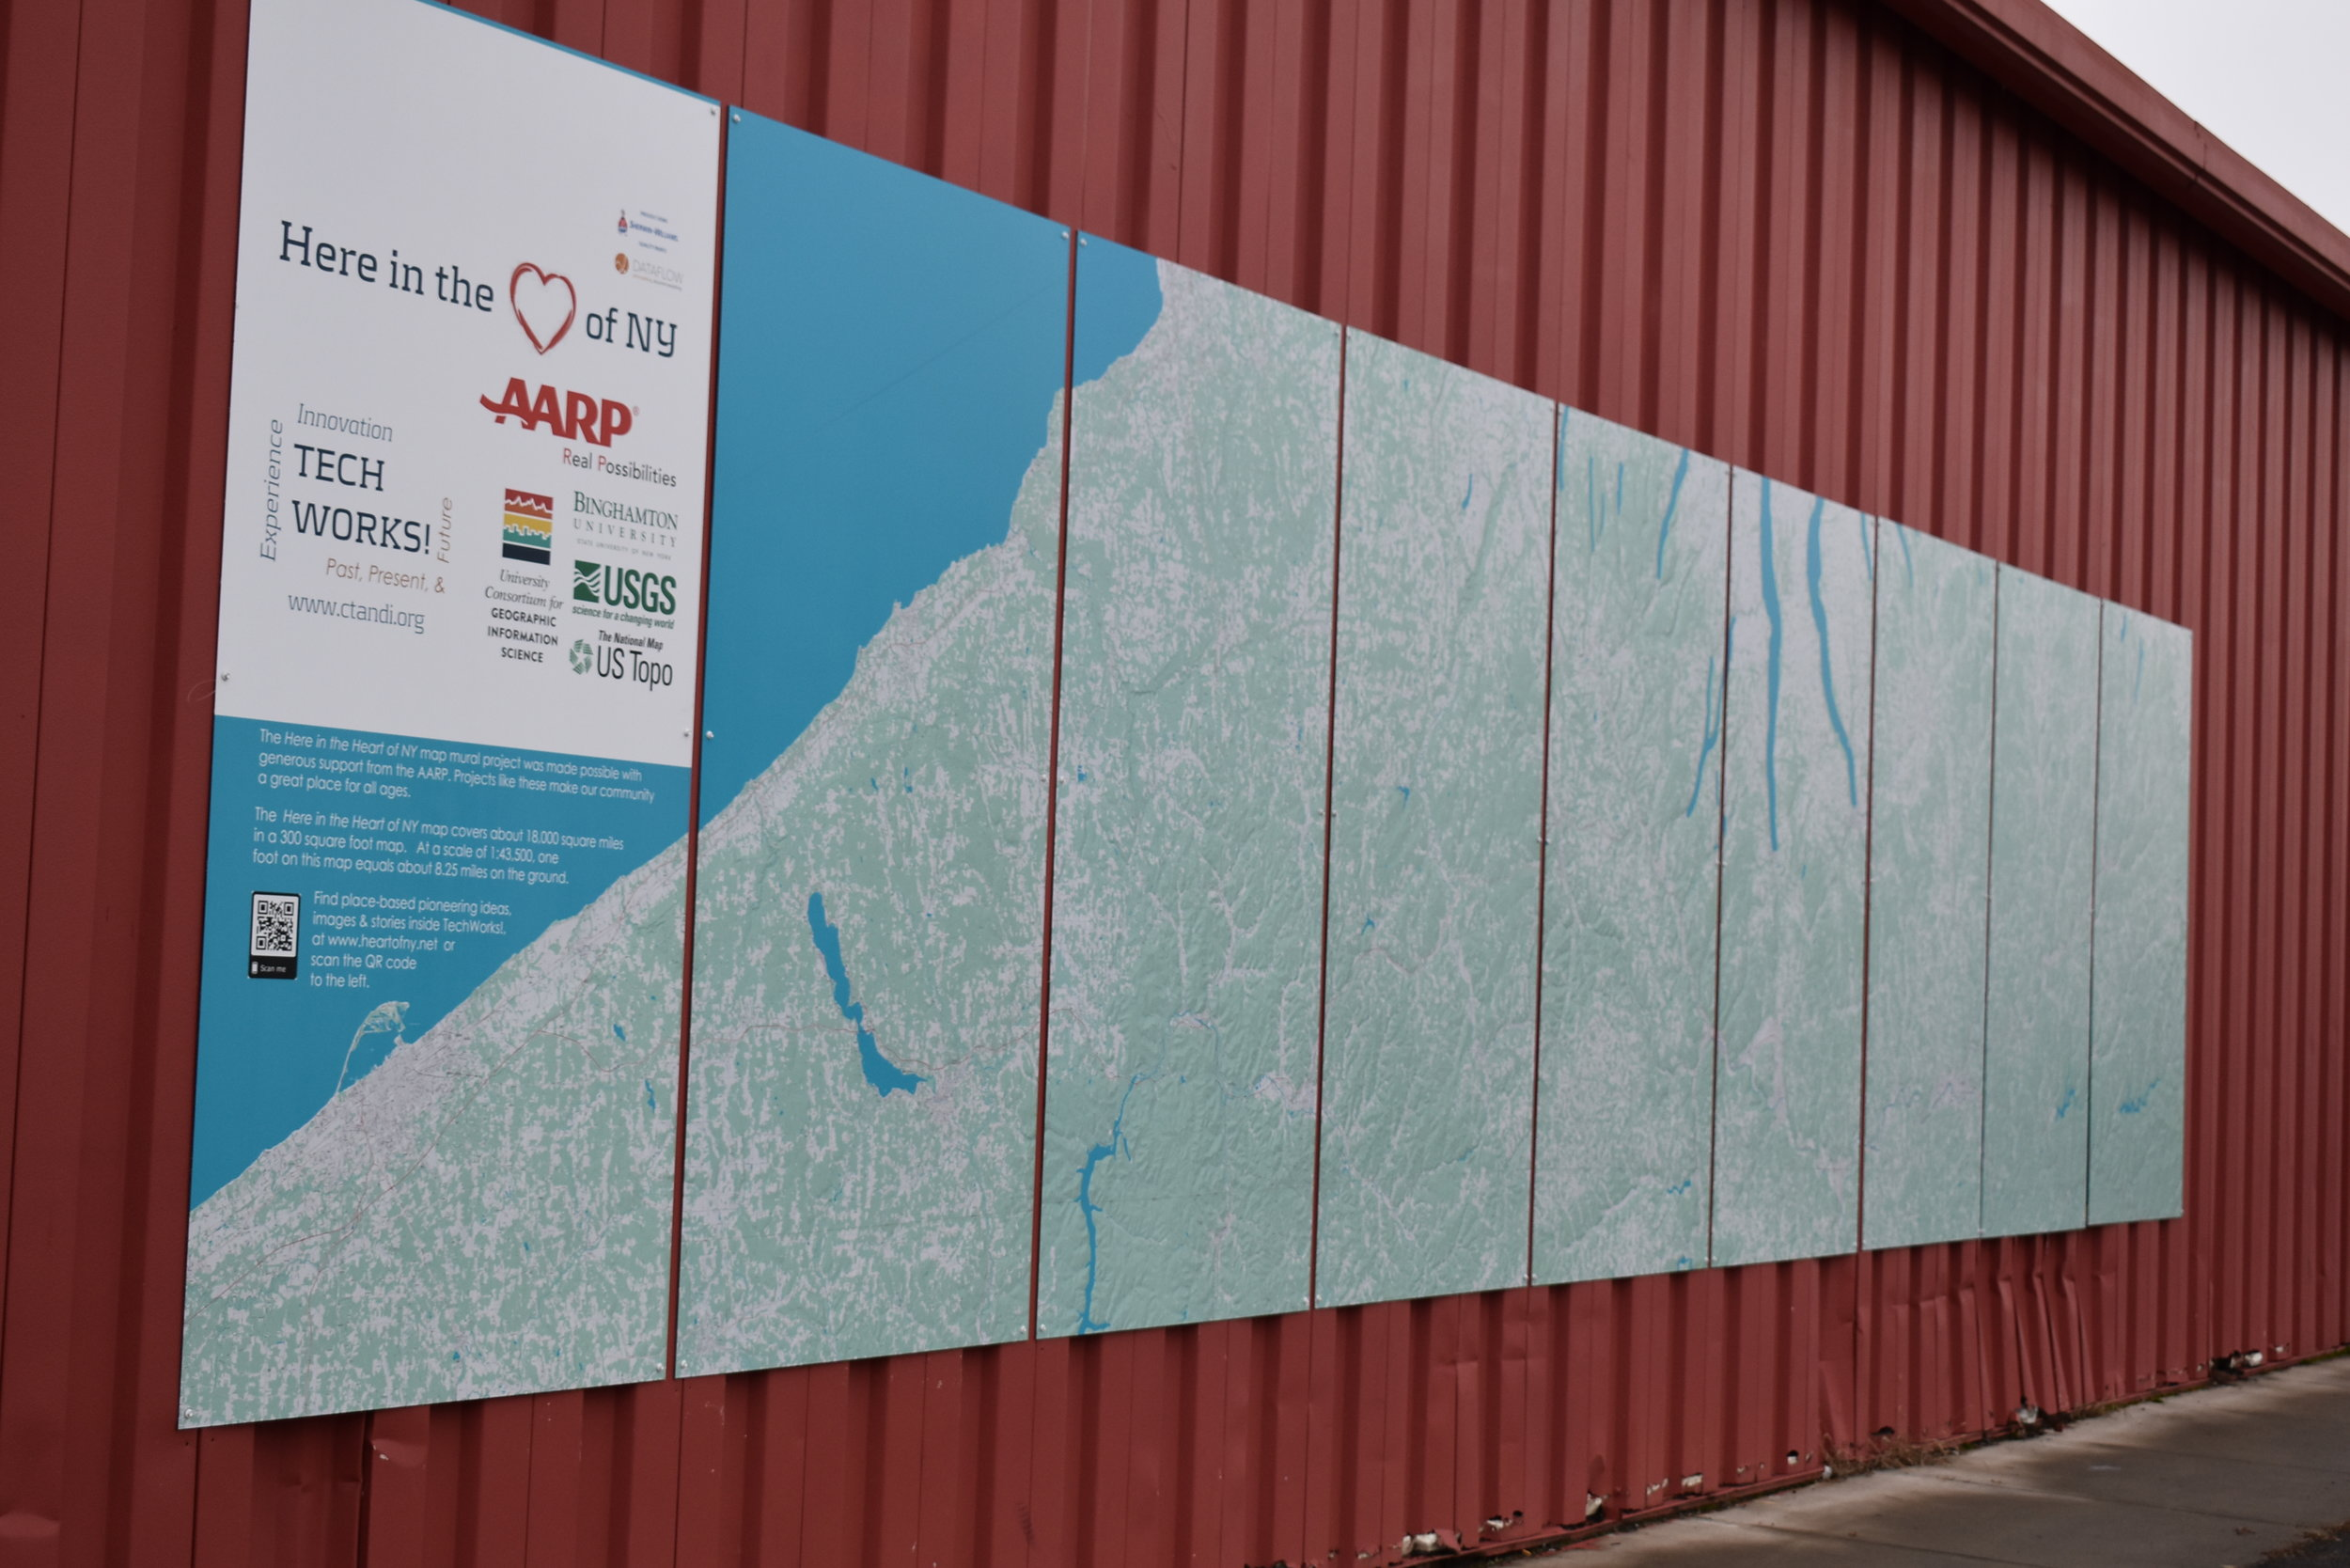 Here in Heart of NY - 18,000 square miles mapped in 300 square foot mural at TechWorks!, 321 Water Street, Binghamton, NY From the source of the Susquehanna River near Cooperstown, NY in the NE corner to Lake Erie, with a slice of Northern Tier of Pennsylvania.